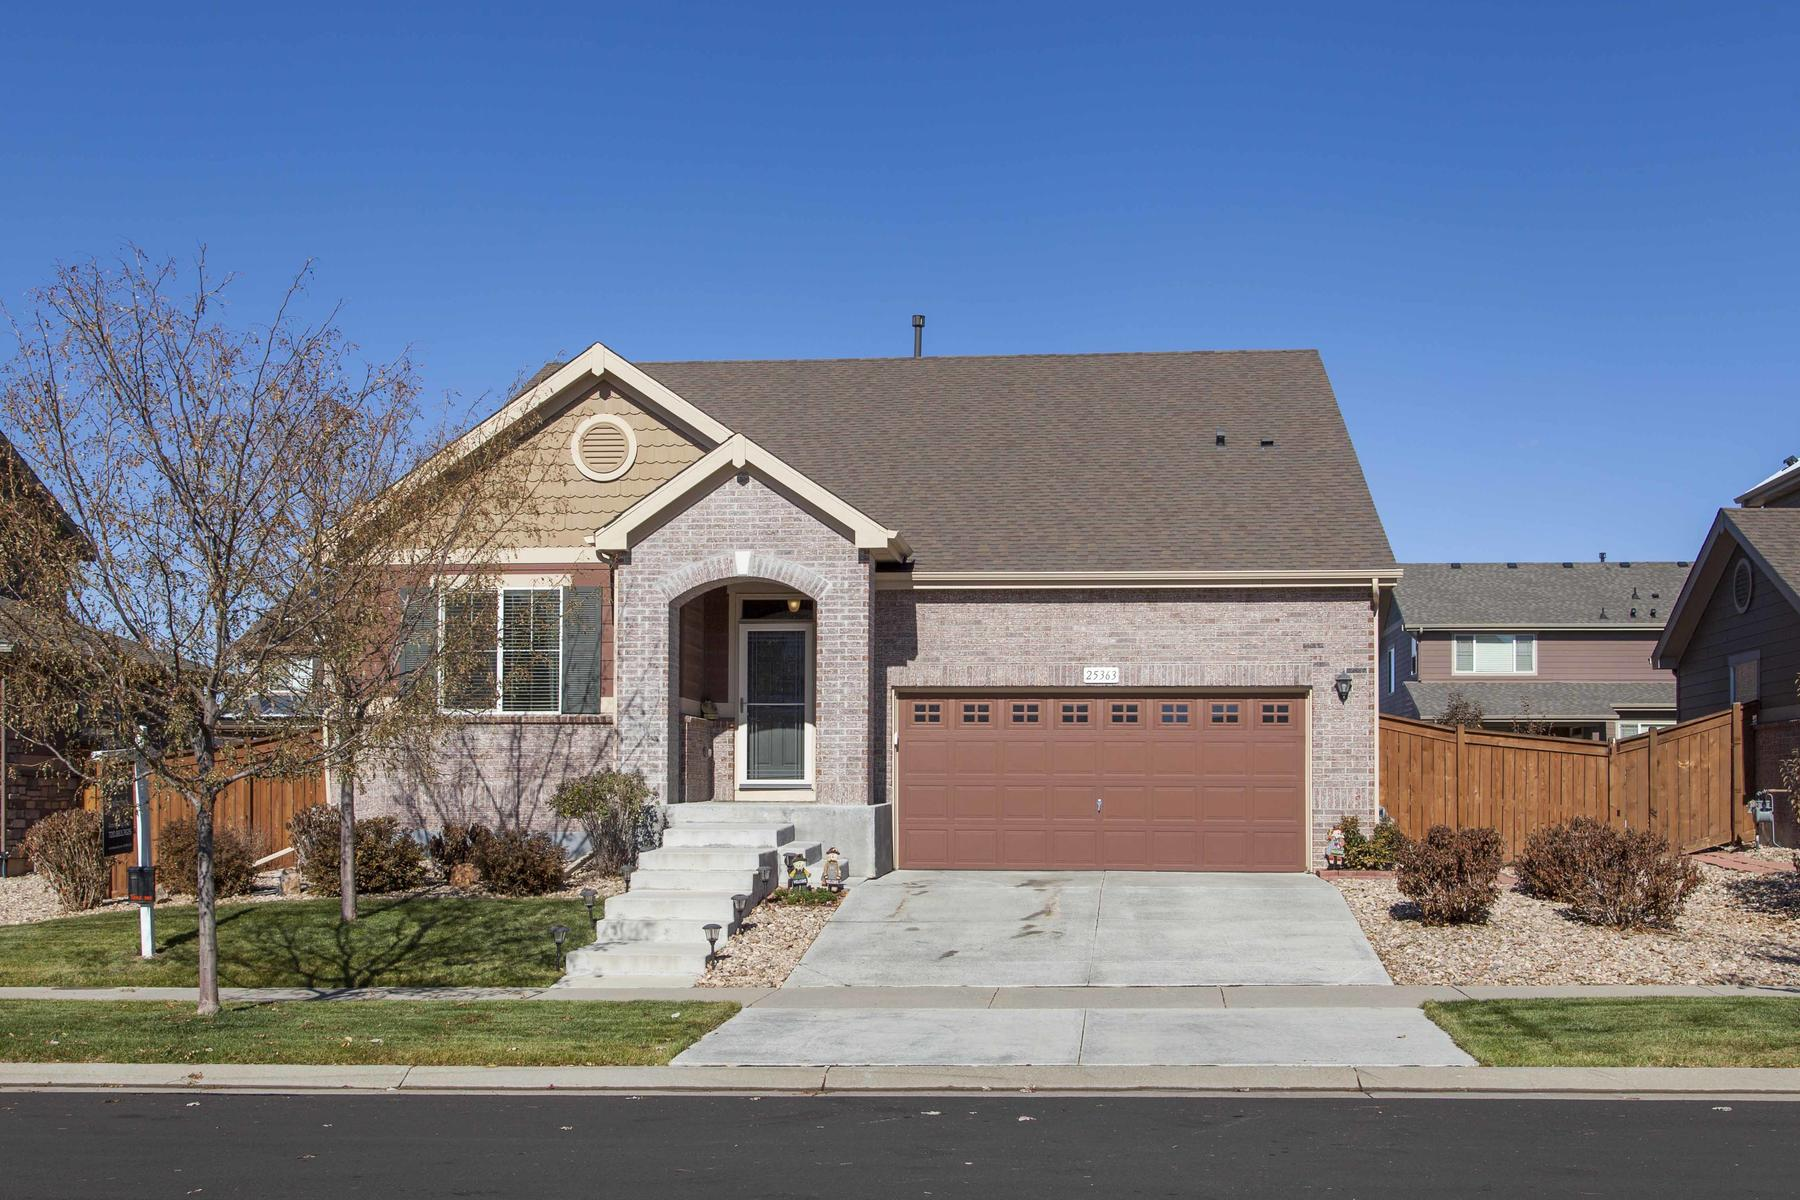 Single Family Home for Active at Immaculately Well-Maintained Home In Traditions Neighborhood 25363 E 2nd Ave Aurora, Colorado 80018 United States